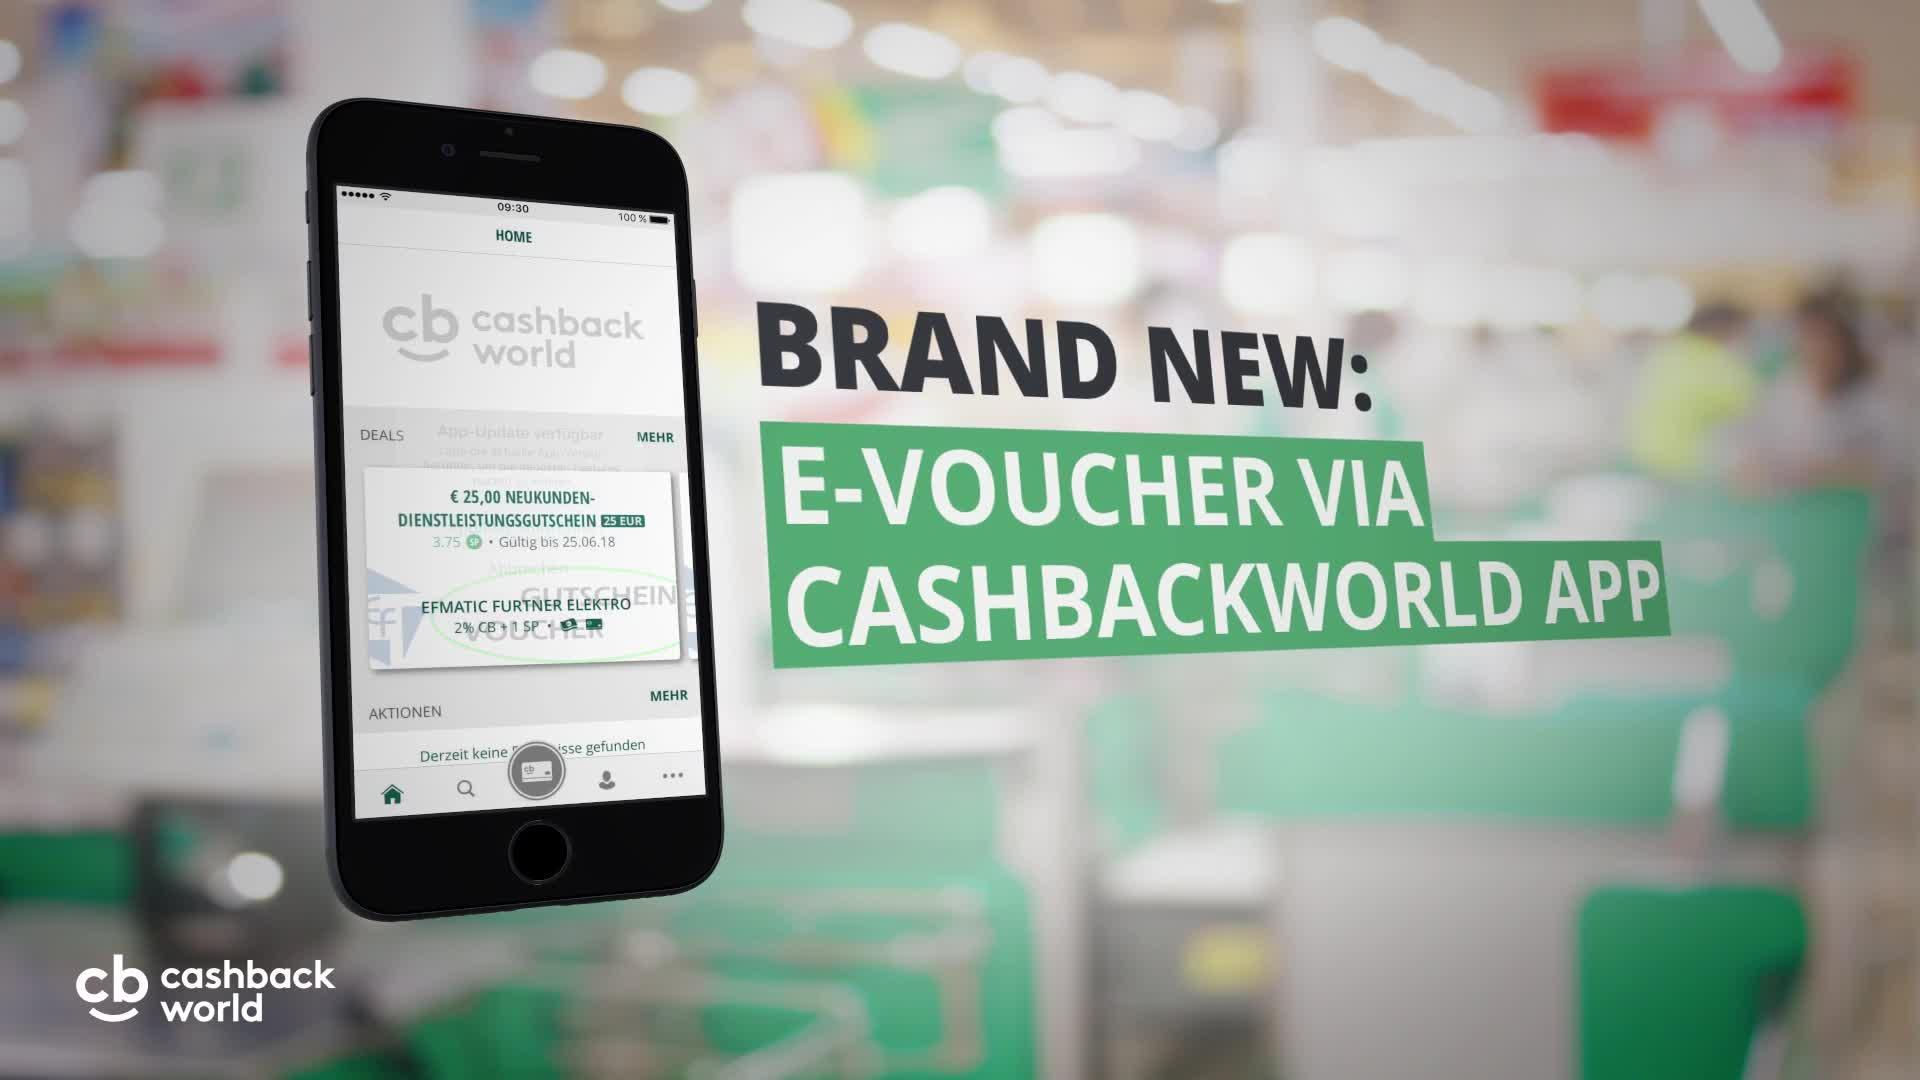 The new Cashback World App